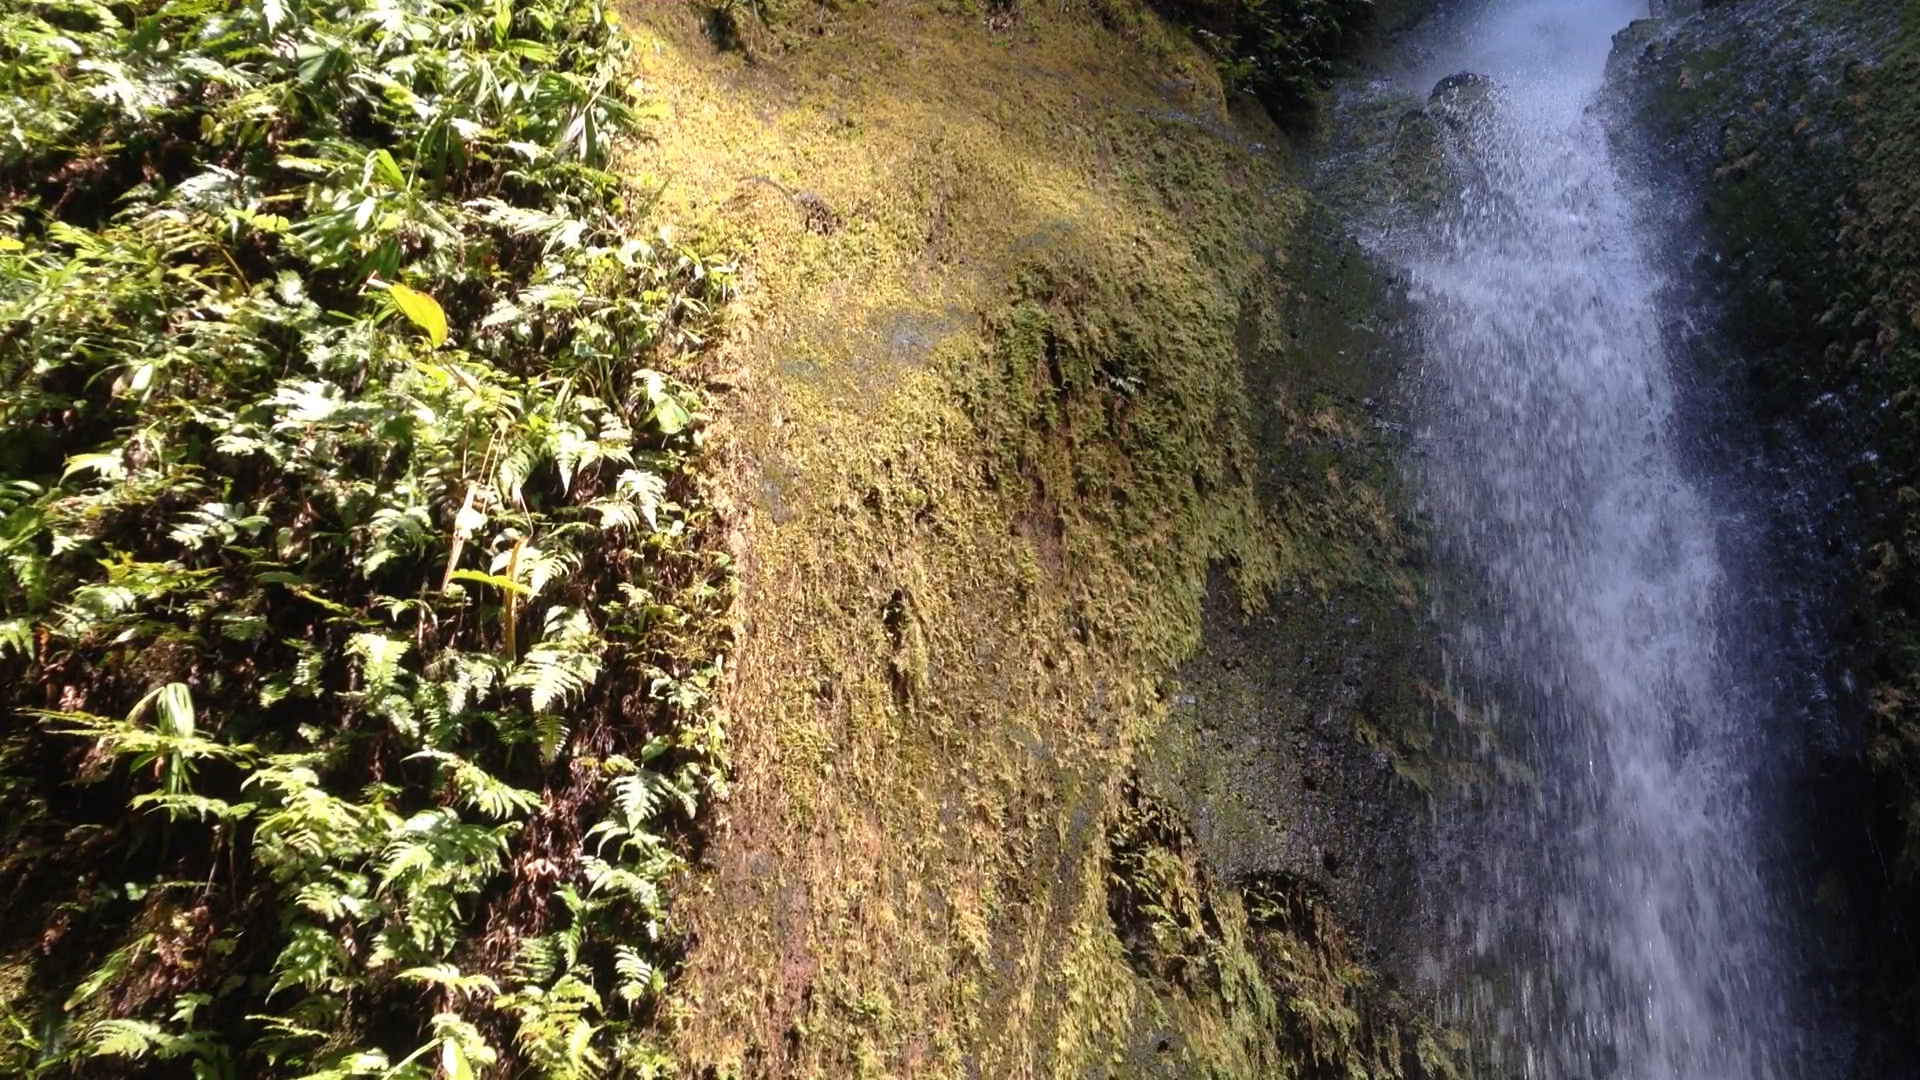 Today, founder Nathan published 10 short video clips from the rainforest in Costa Rica, including this of a secret waterfall, giving web visitors, followers and supporters a window into this spectacular wild environment - Happy #WorldRainforestDay!